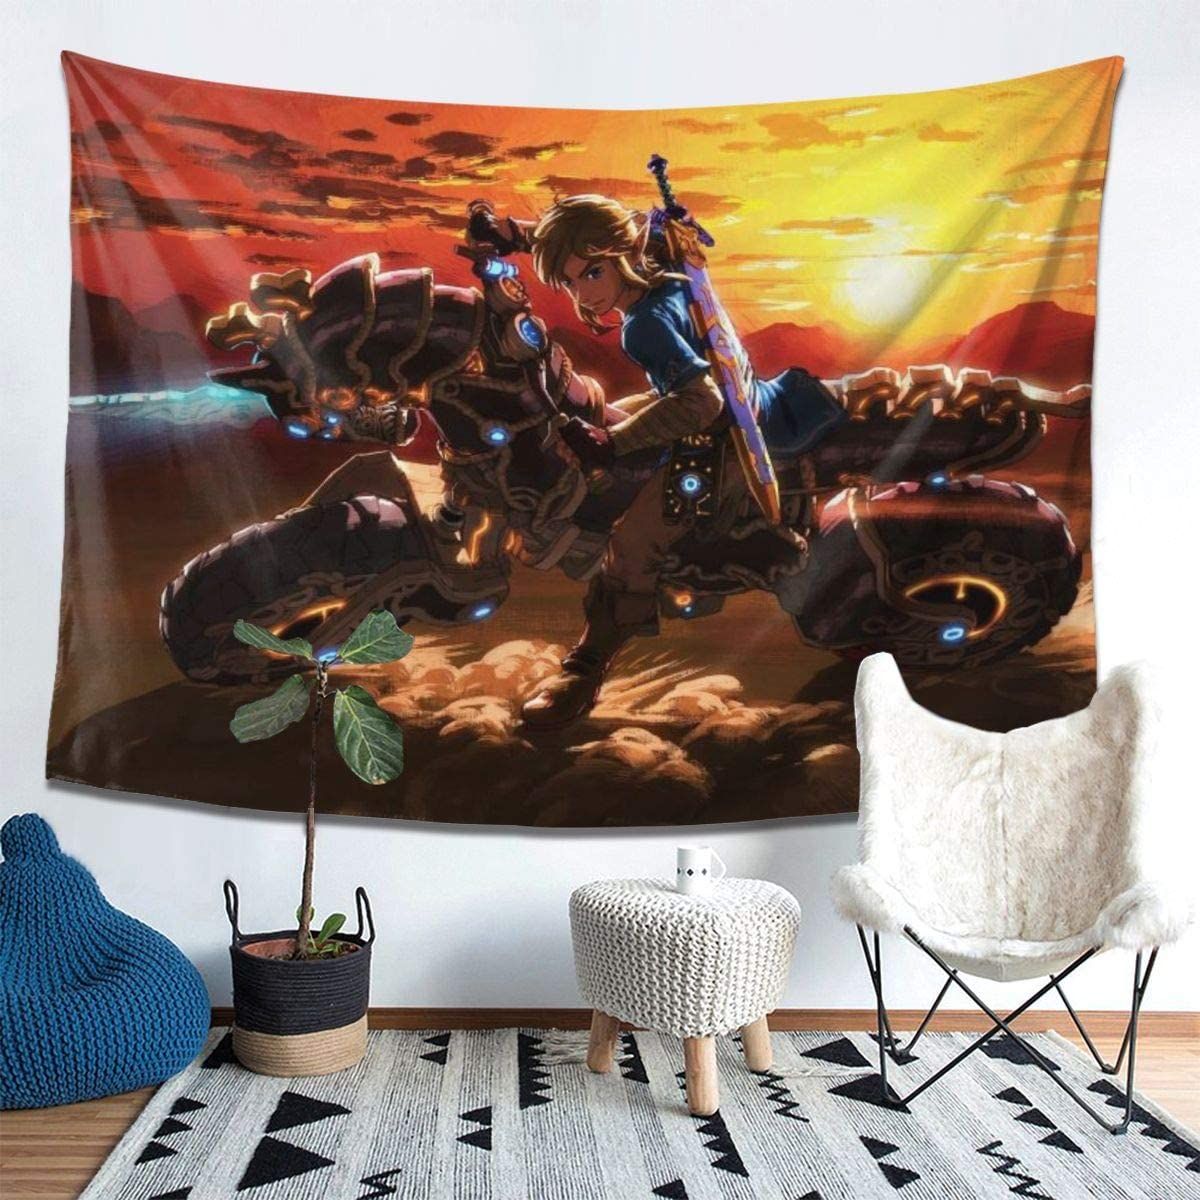 Home Decor Anime Tapestry Wall Decor Blanket How to Train Your Dragon Tapestry